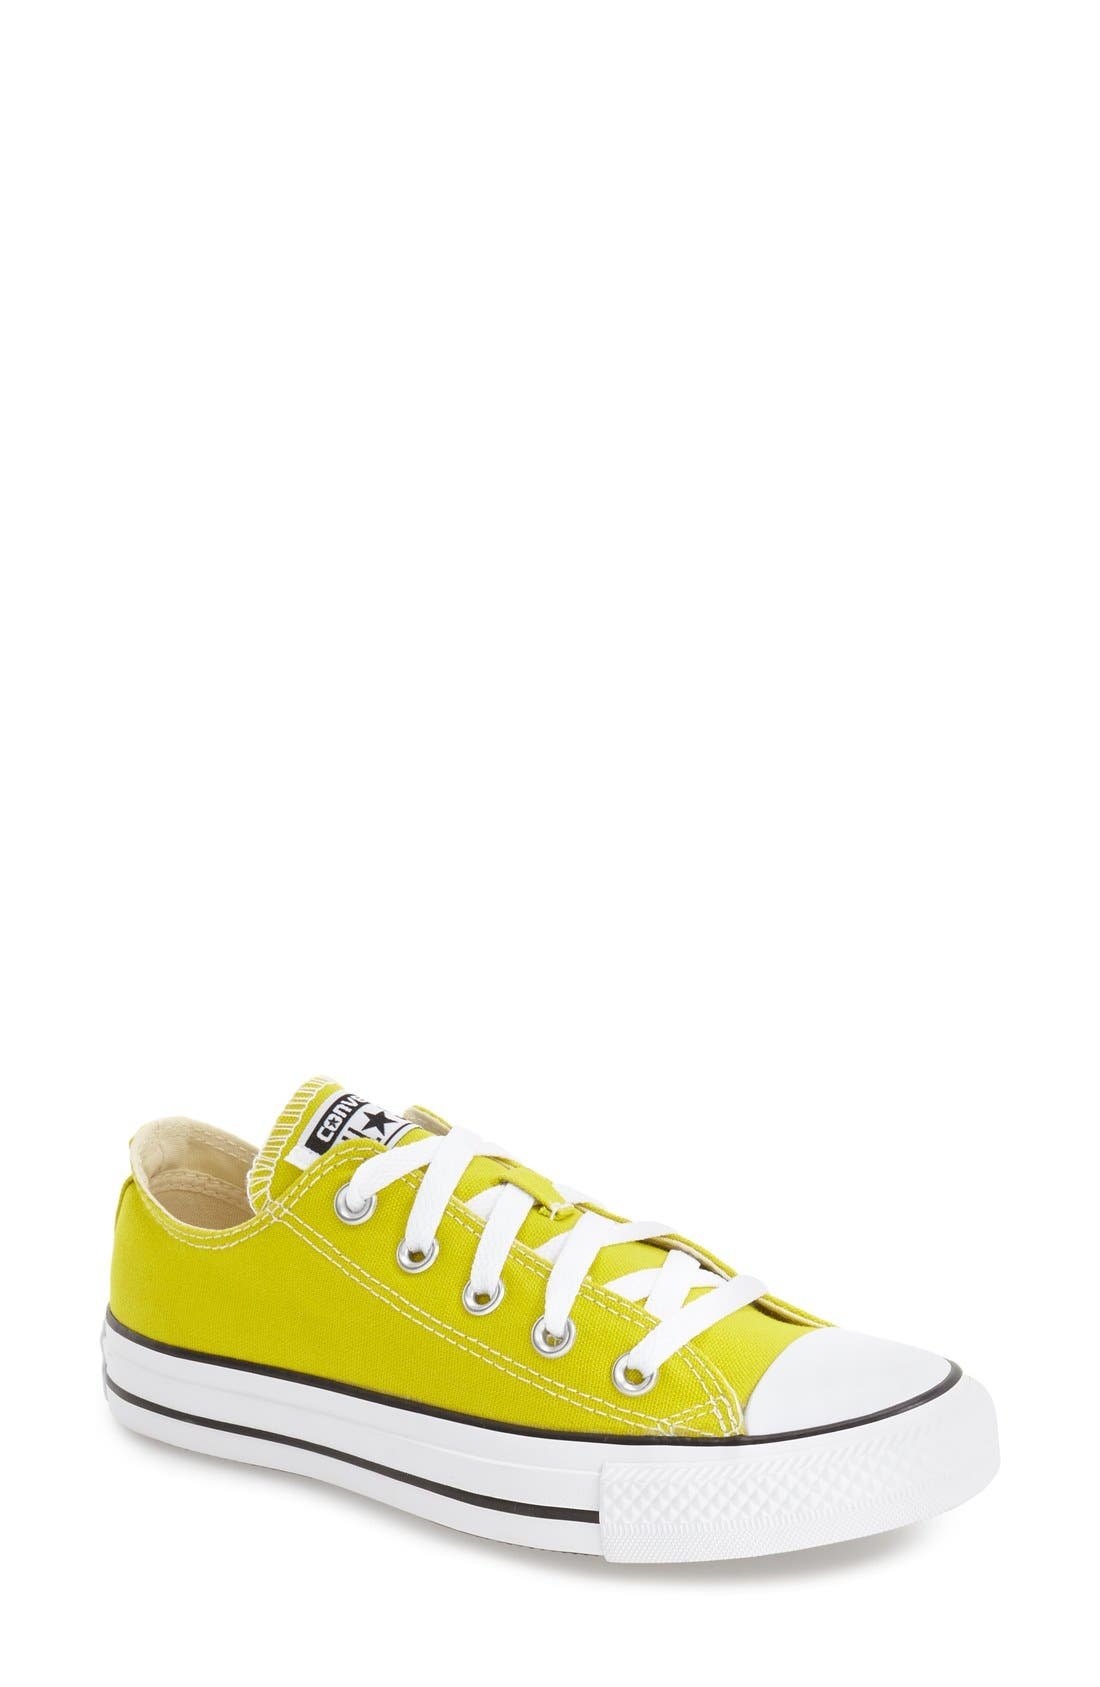 Alternate Image 1 Selected - Converse Chuck Taylor® All Star® Seasonal Ox Low Top Sneaker (Women)